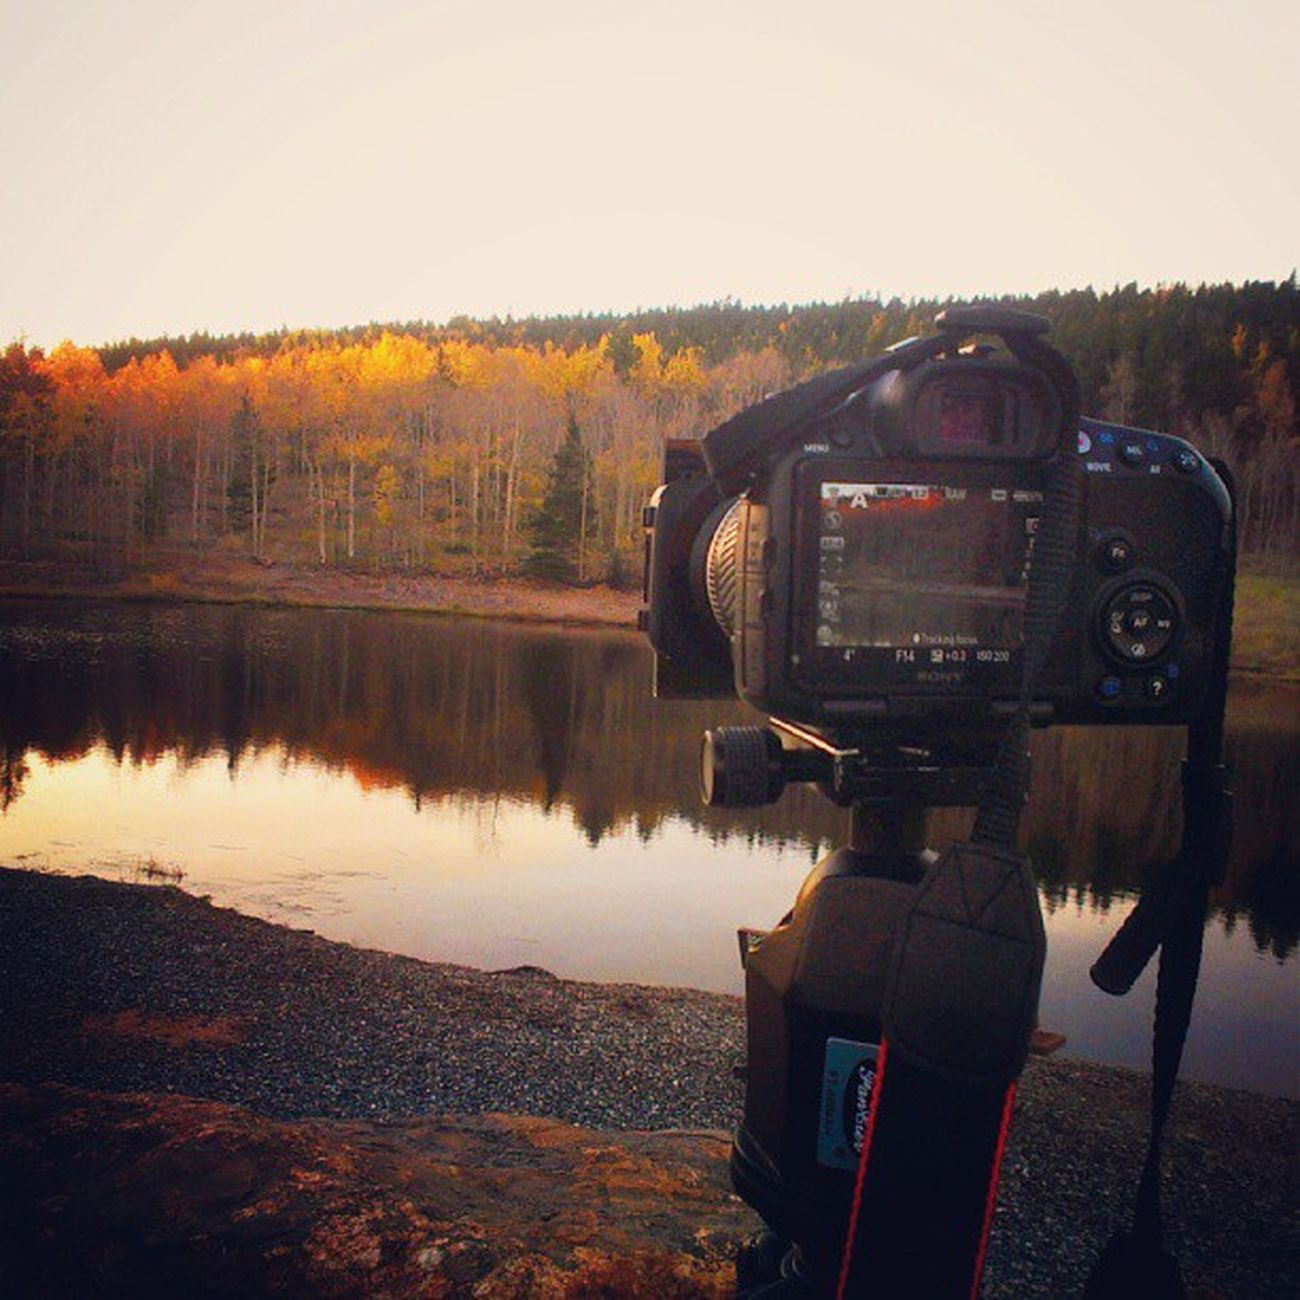 Shooting Fall Colorado colors at Sunrise this am Cowx autumn sony btl behindthelens